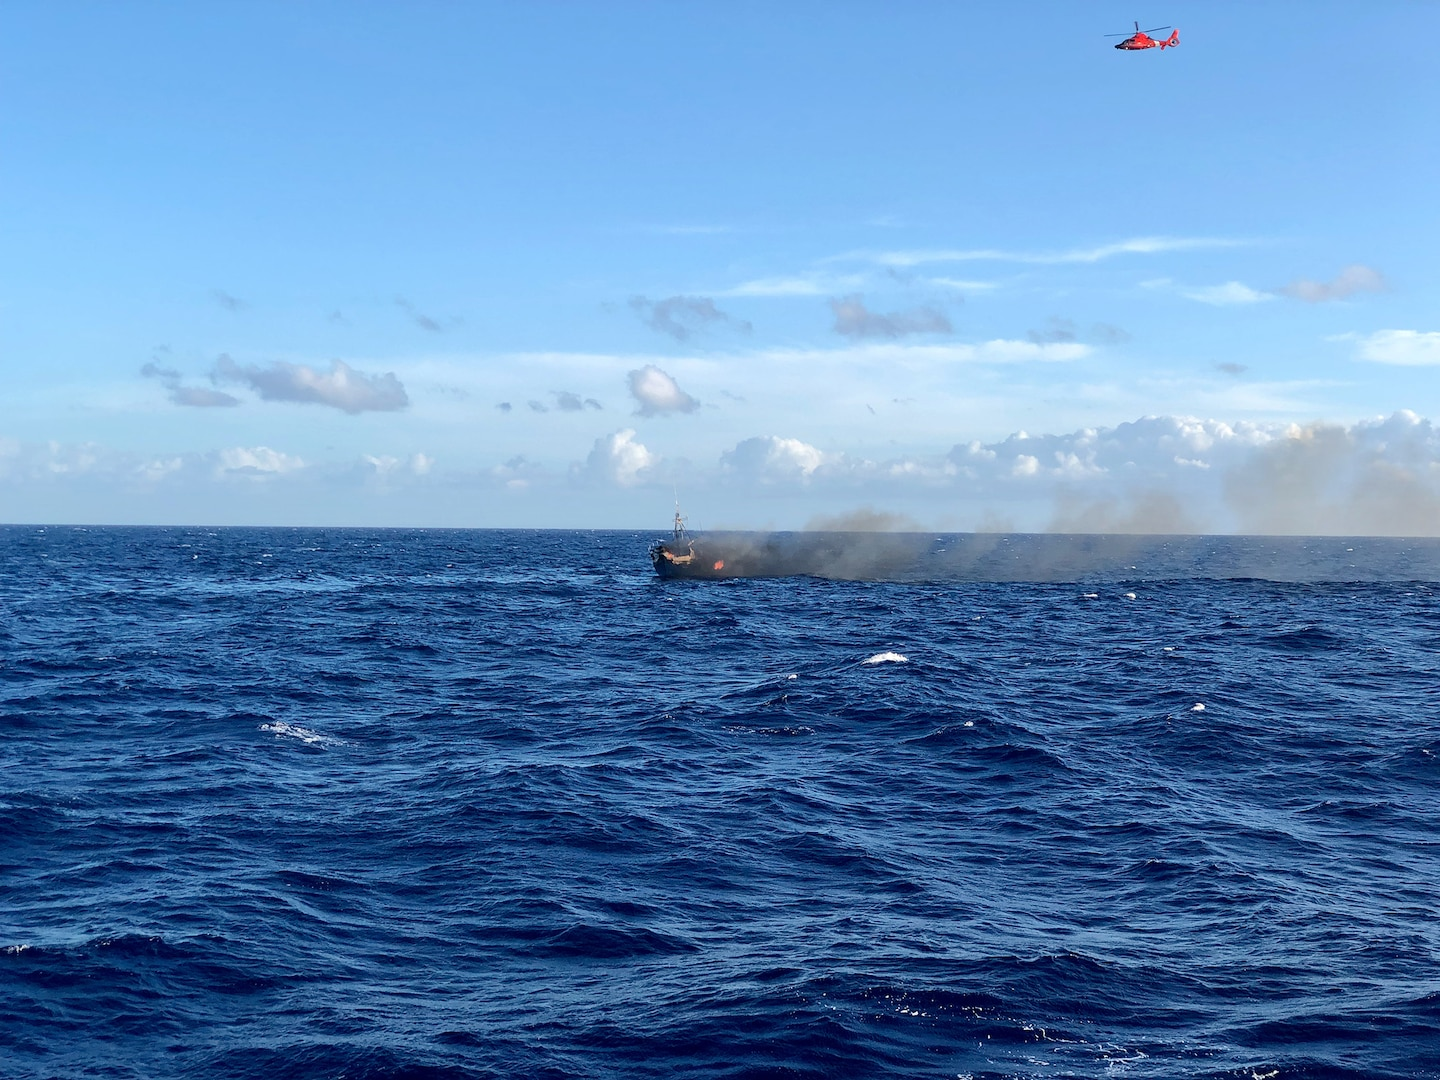 Coast Guard Rescues 7 Mariners from Vessel on Fire off Oahu